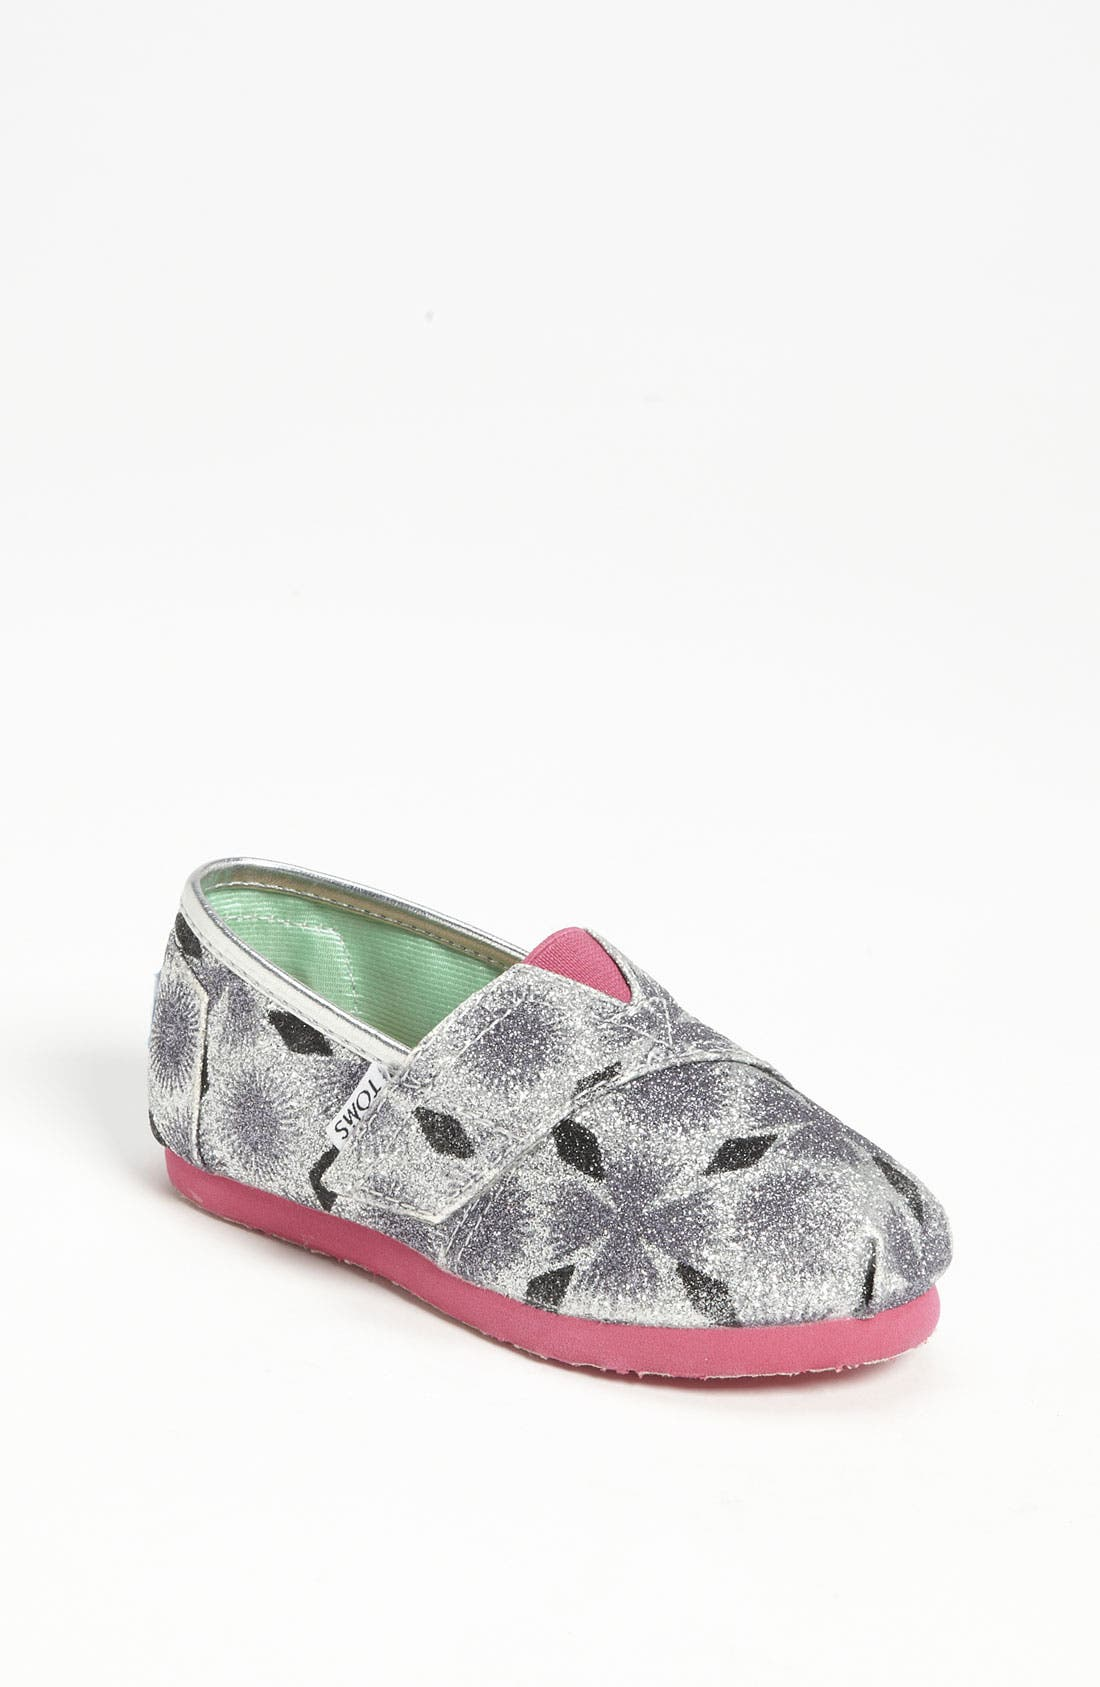 Alternate Image 1 Selected - TOMS 'Classic Tiny - Starburst' Slip-On (Baby, Walker & Toddler) (Nordstrom Exclusive)